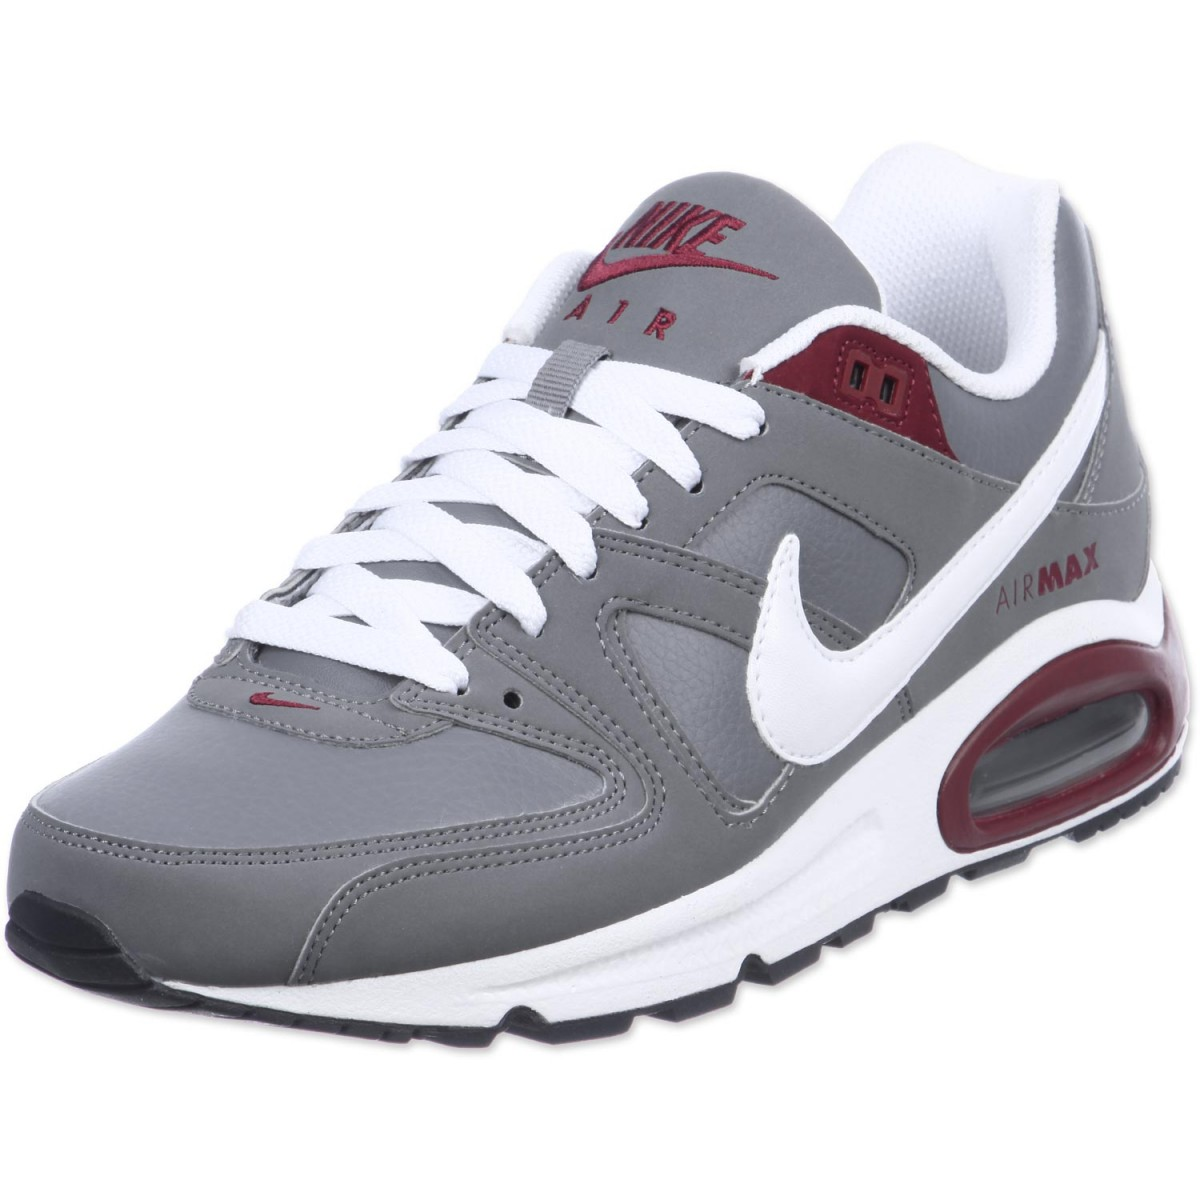 Chaussures running homme Nike Achat Vente pas cher